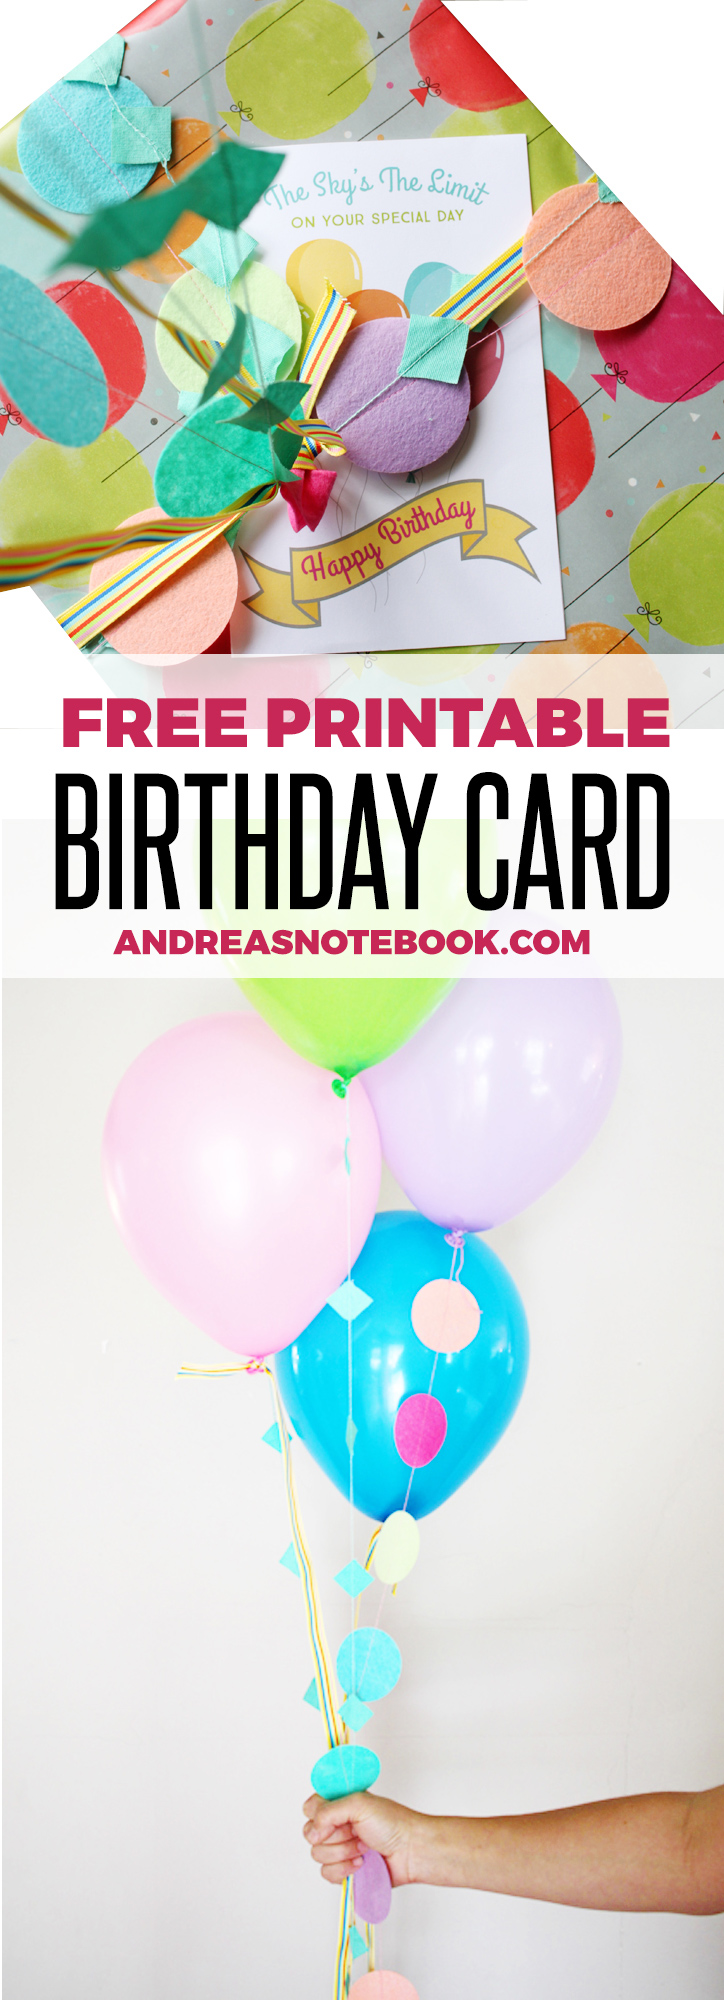 Download this free printable birthday card!